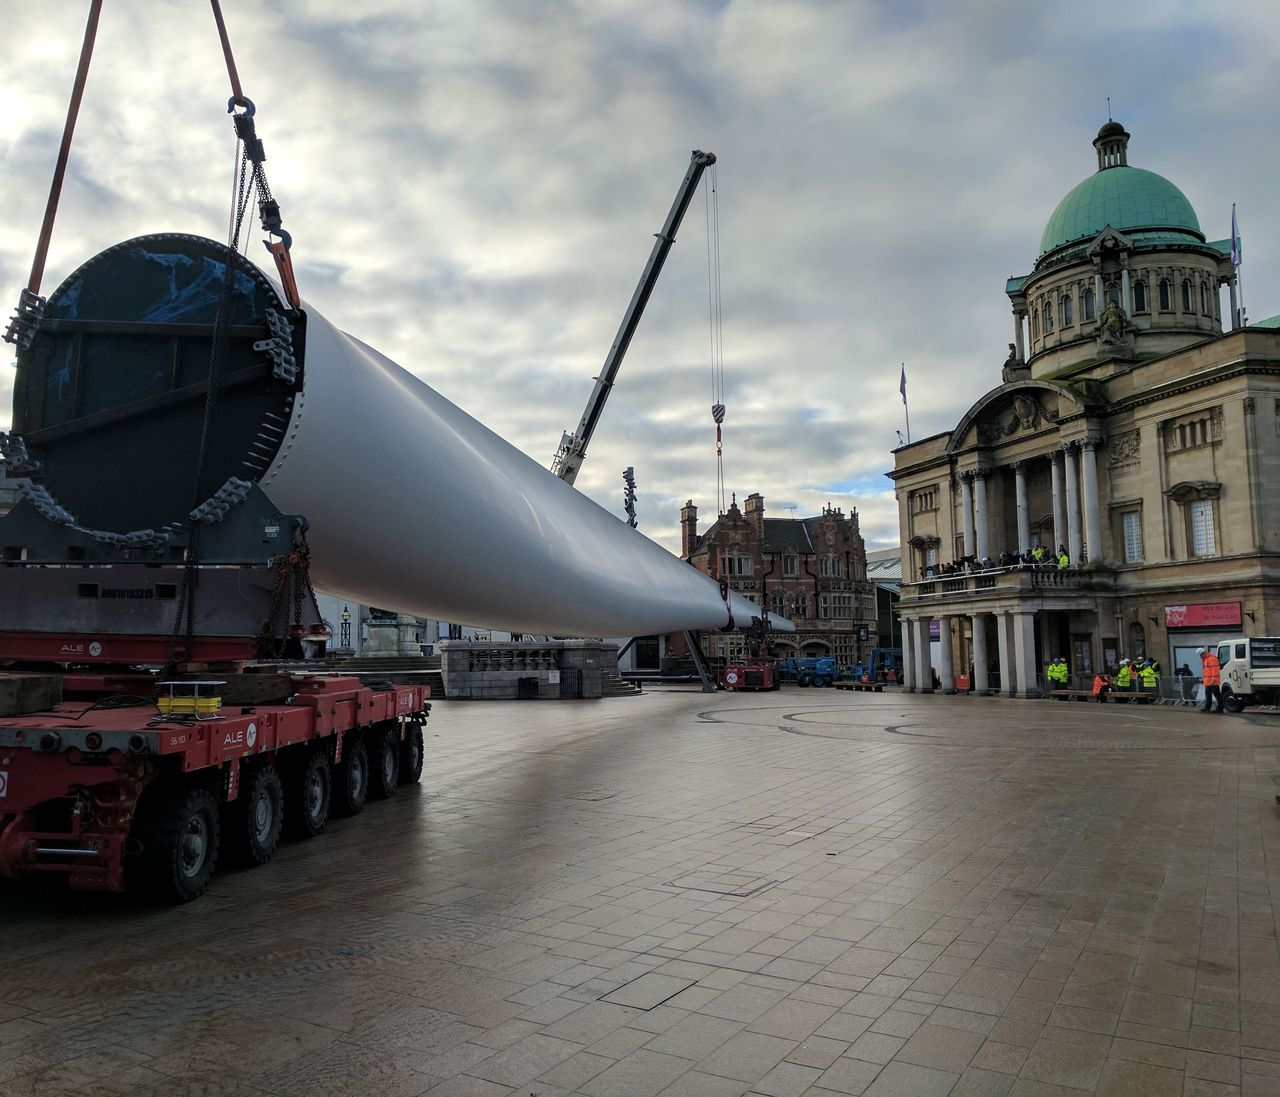 Siemens wind turbine blade is lifted into position in Hull's Queen Victoria Square (08/01/2017) during Hull 2017 City Of Culture Architecture Blade City Cloud - Sky Day Hull Hull 2017 Hull City Of Culture 2017 Hull2017 No People Outdoors Siemens  Sky Turbine Wind Turbine